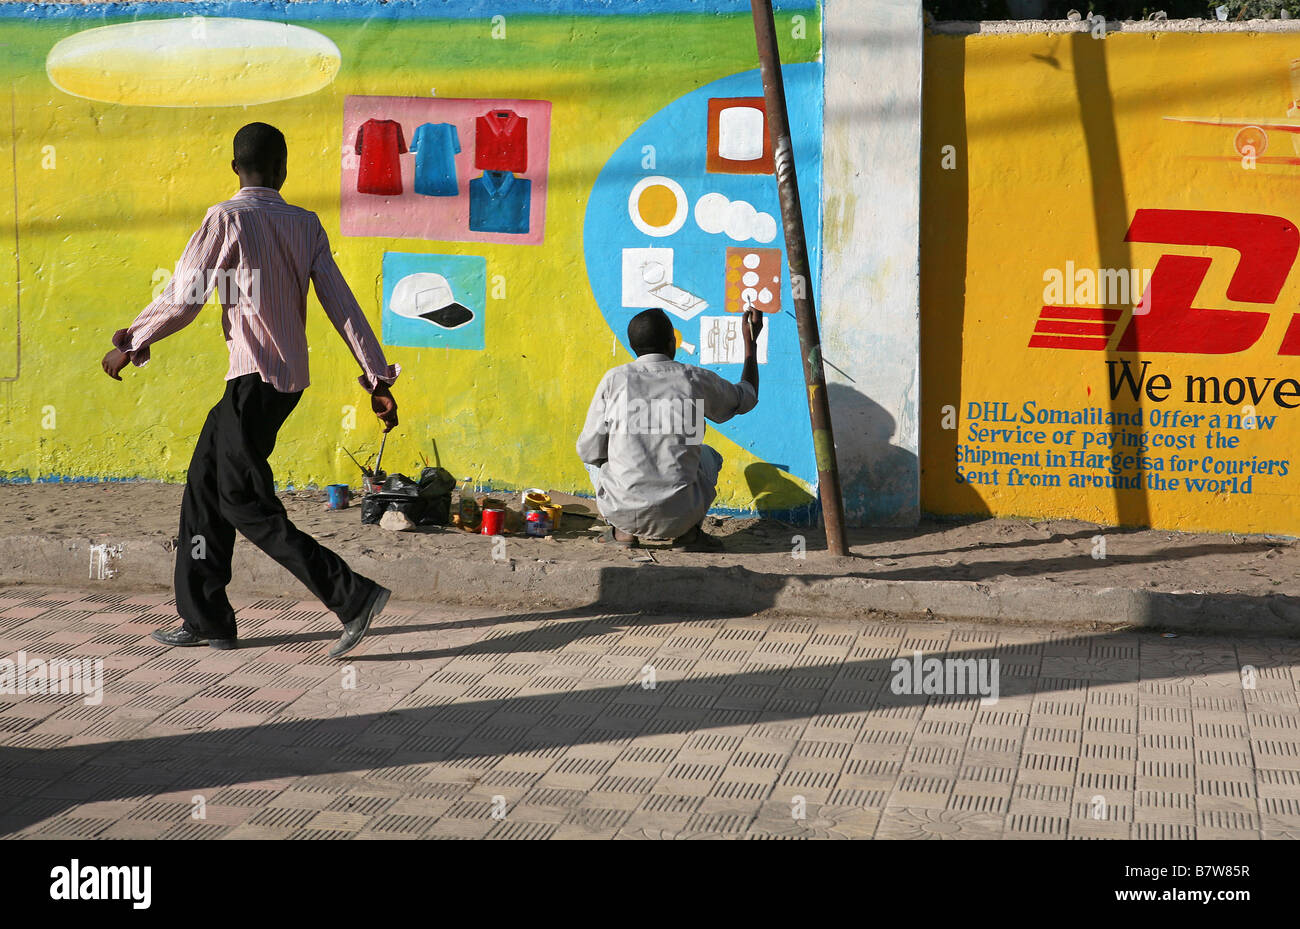 Man painting an advertising mural on a wall, Hargeisa, Somaliland, Somalia, Africa - Stock Image